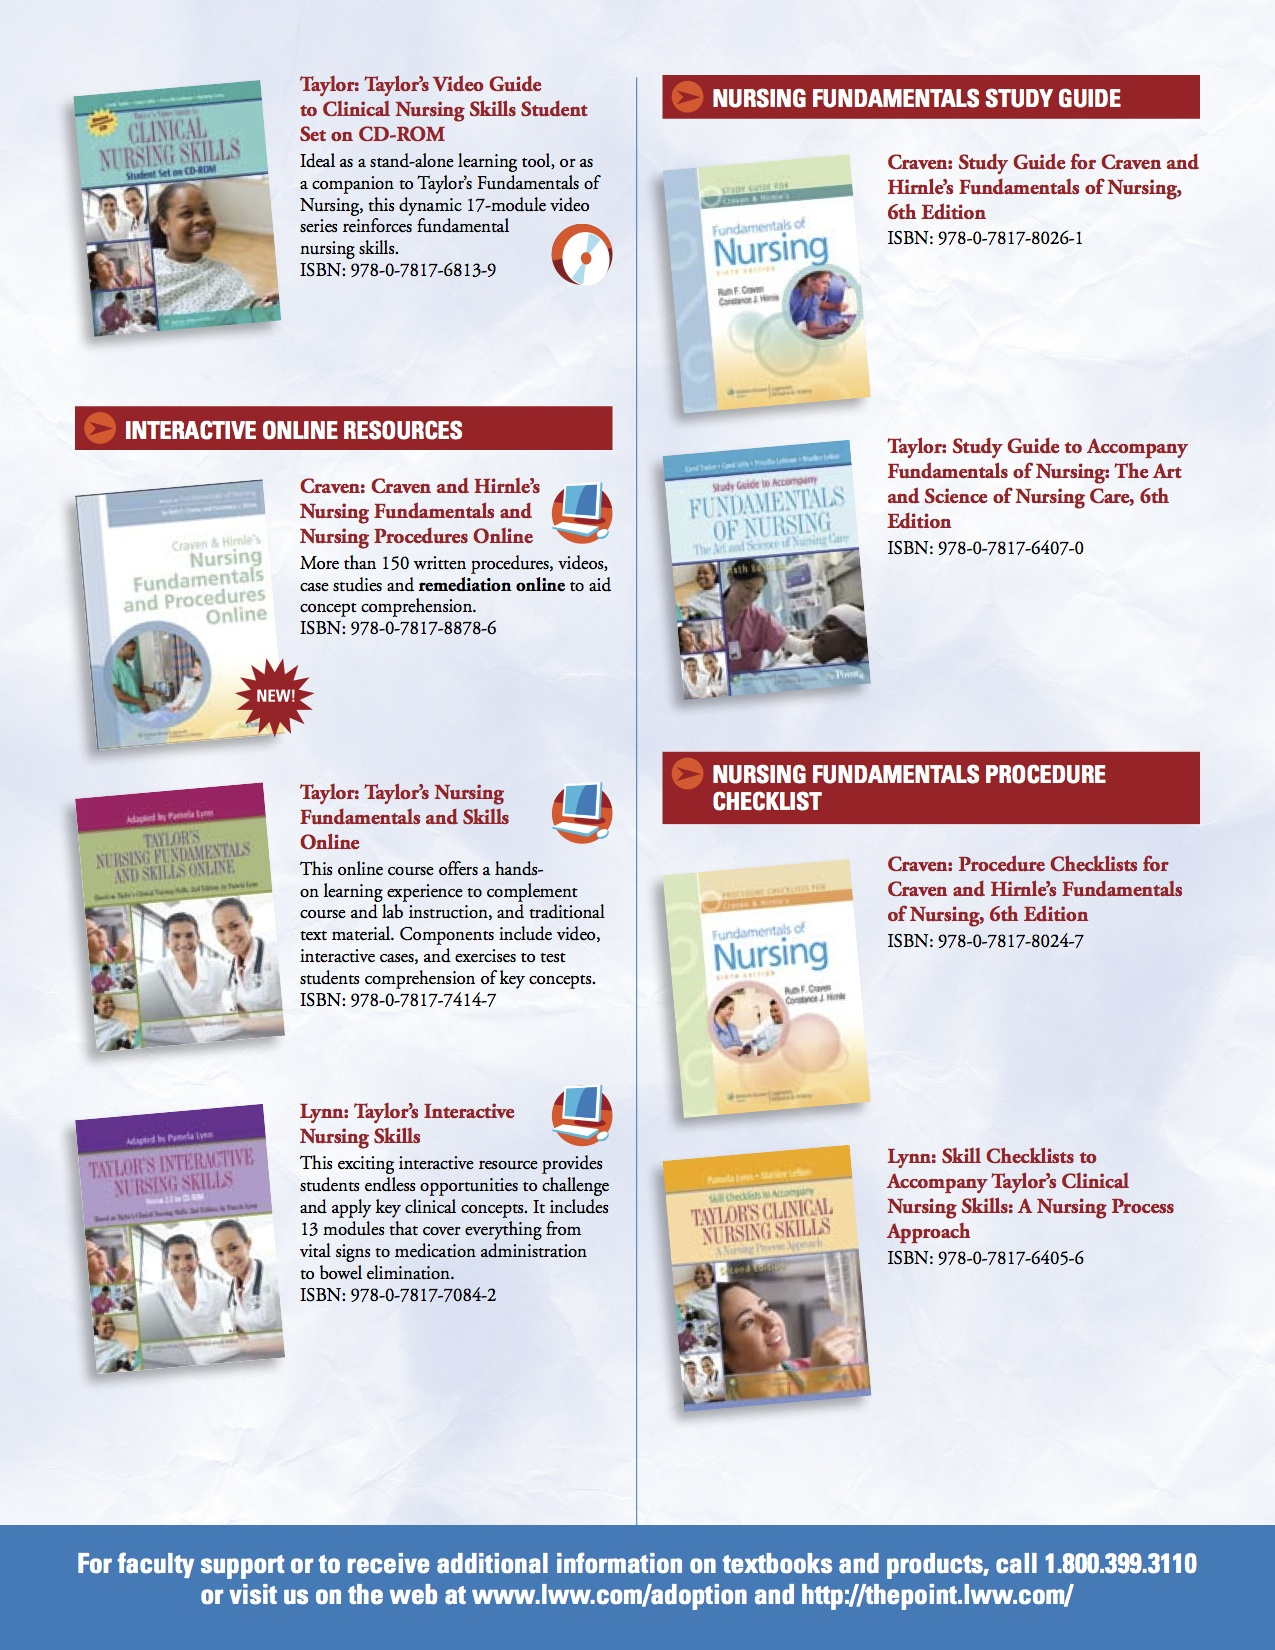 Nursing-Fundamentals-Brochure-2.jpg